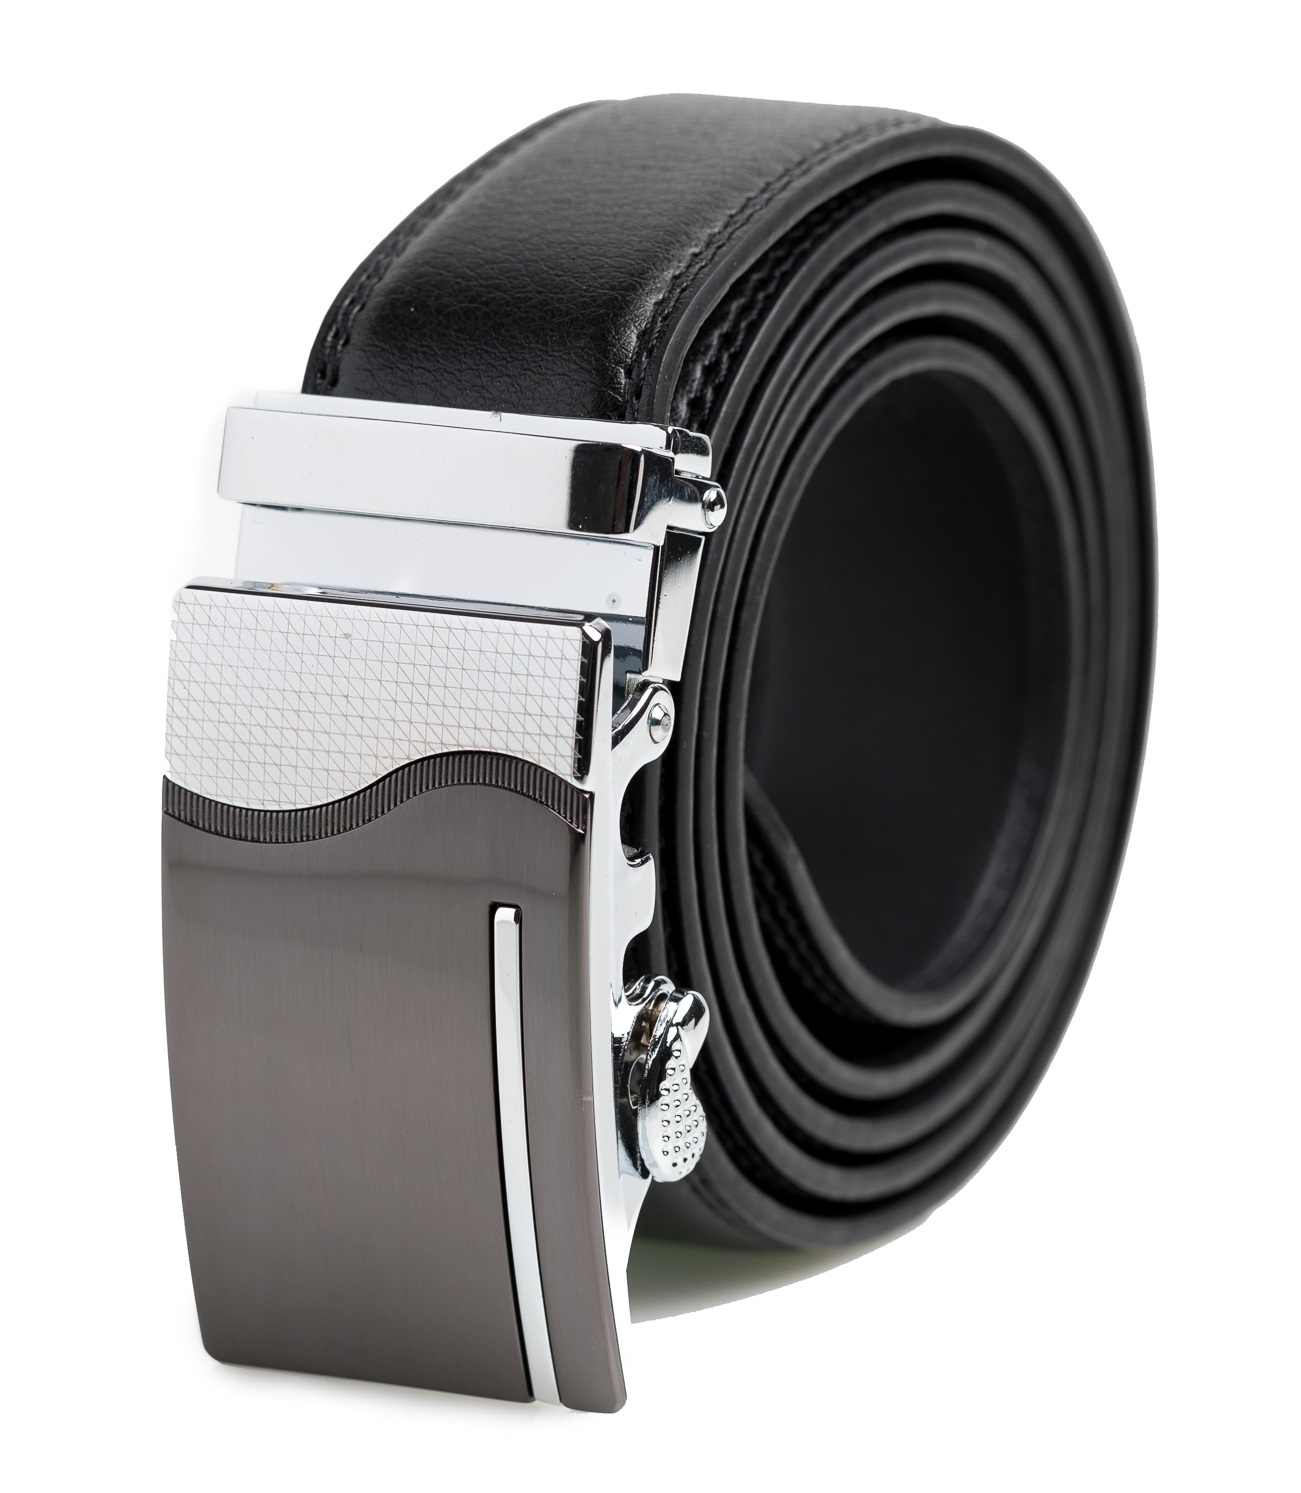 Mens Genuine Leather Dress Belt Black-004 Platinum Hanger Adjustable Track Belt Automatic Sliding Buckle Ratchet Belt